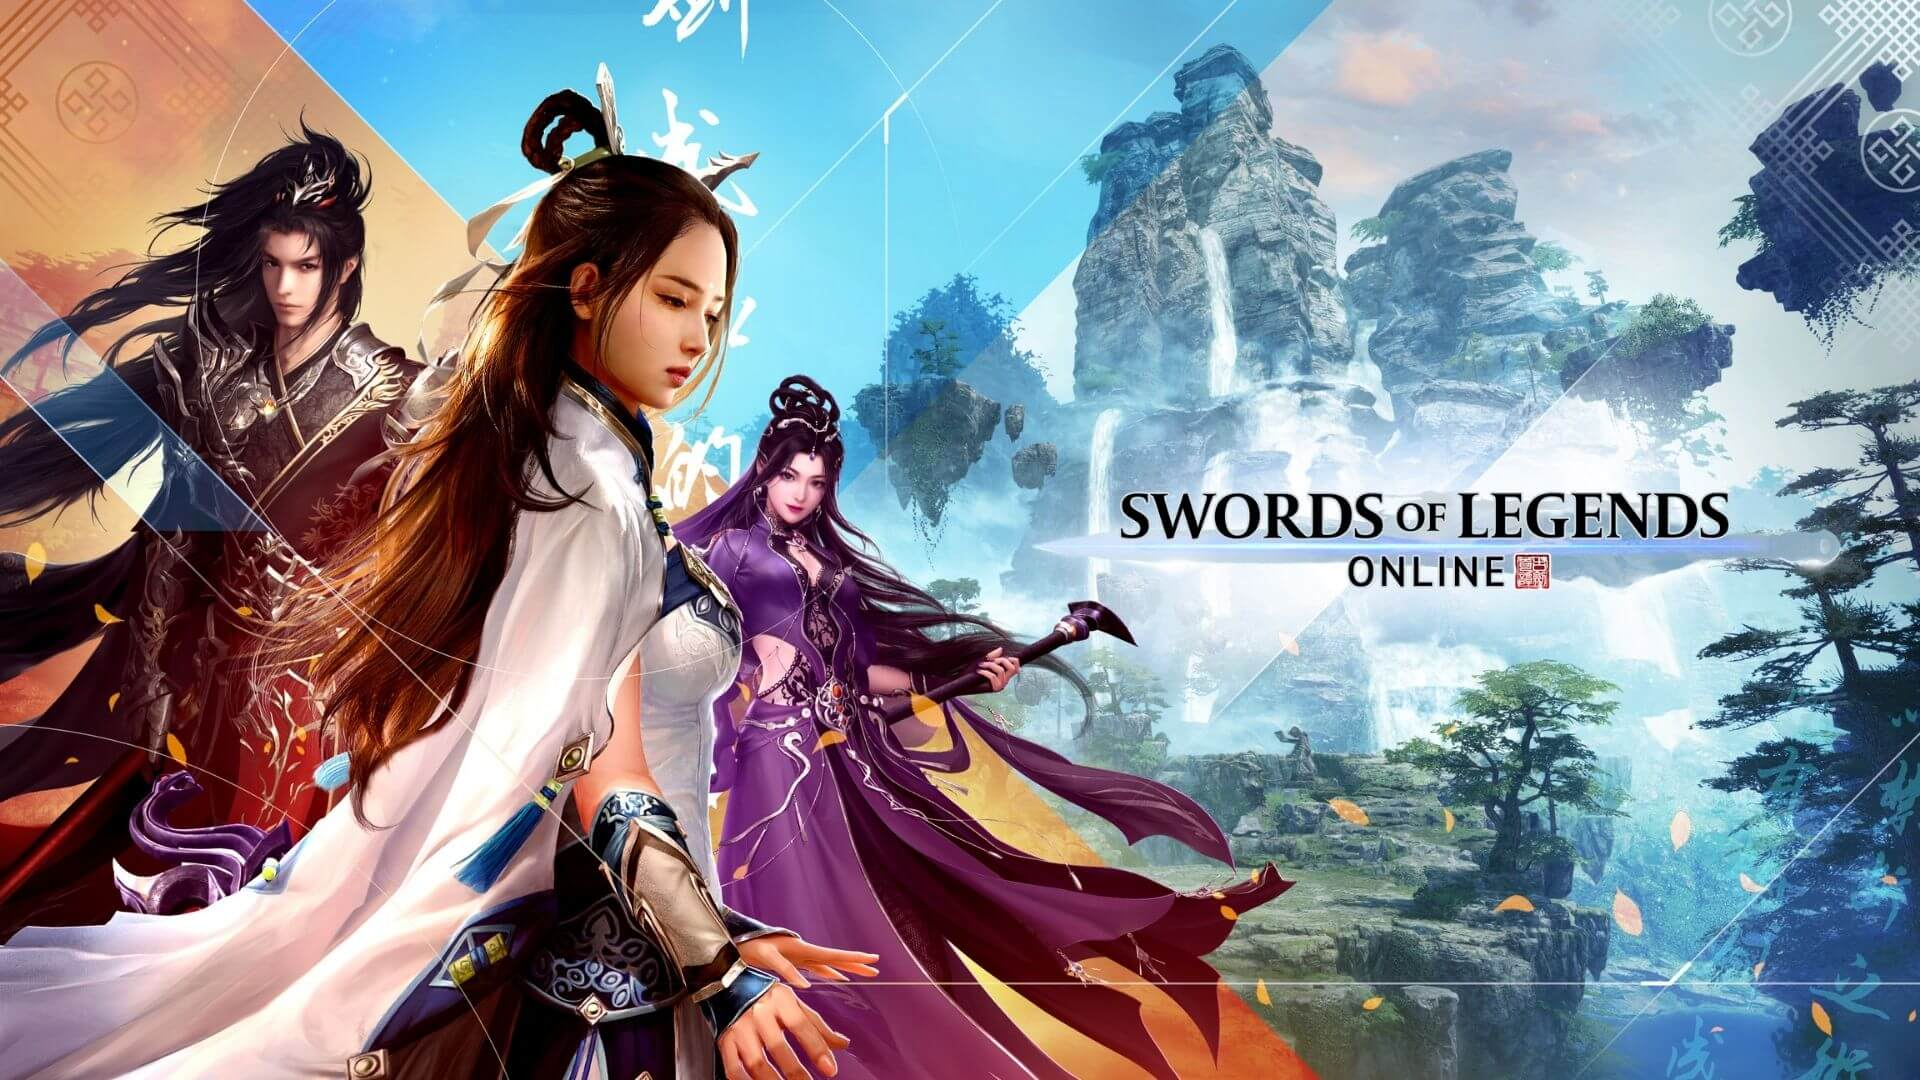 Swords of Legends Online MMORPG Coming to the West